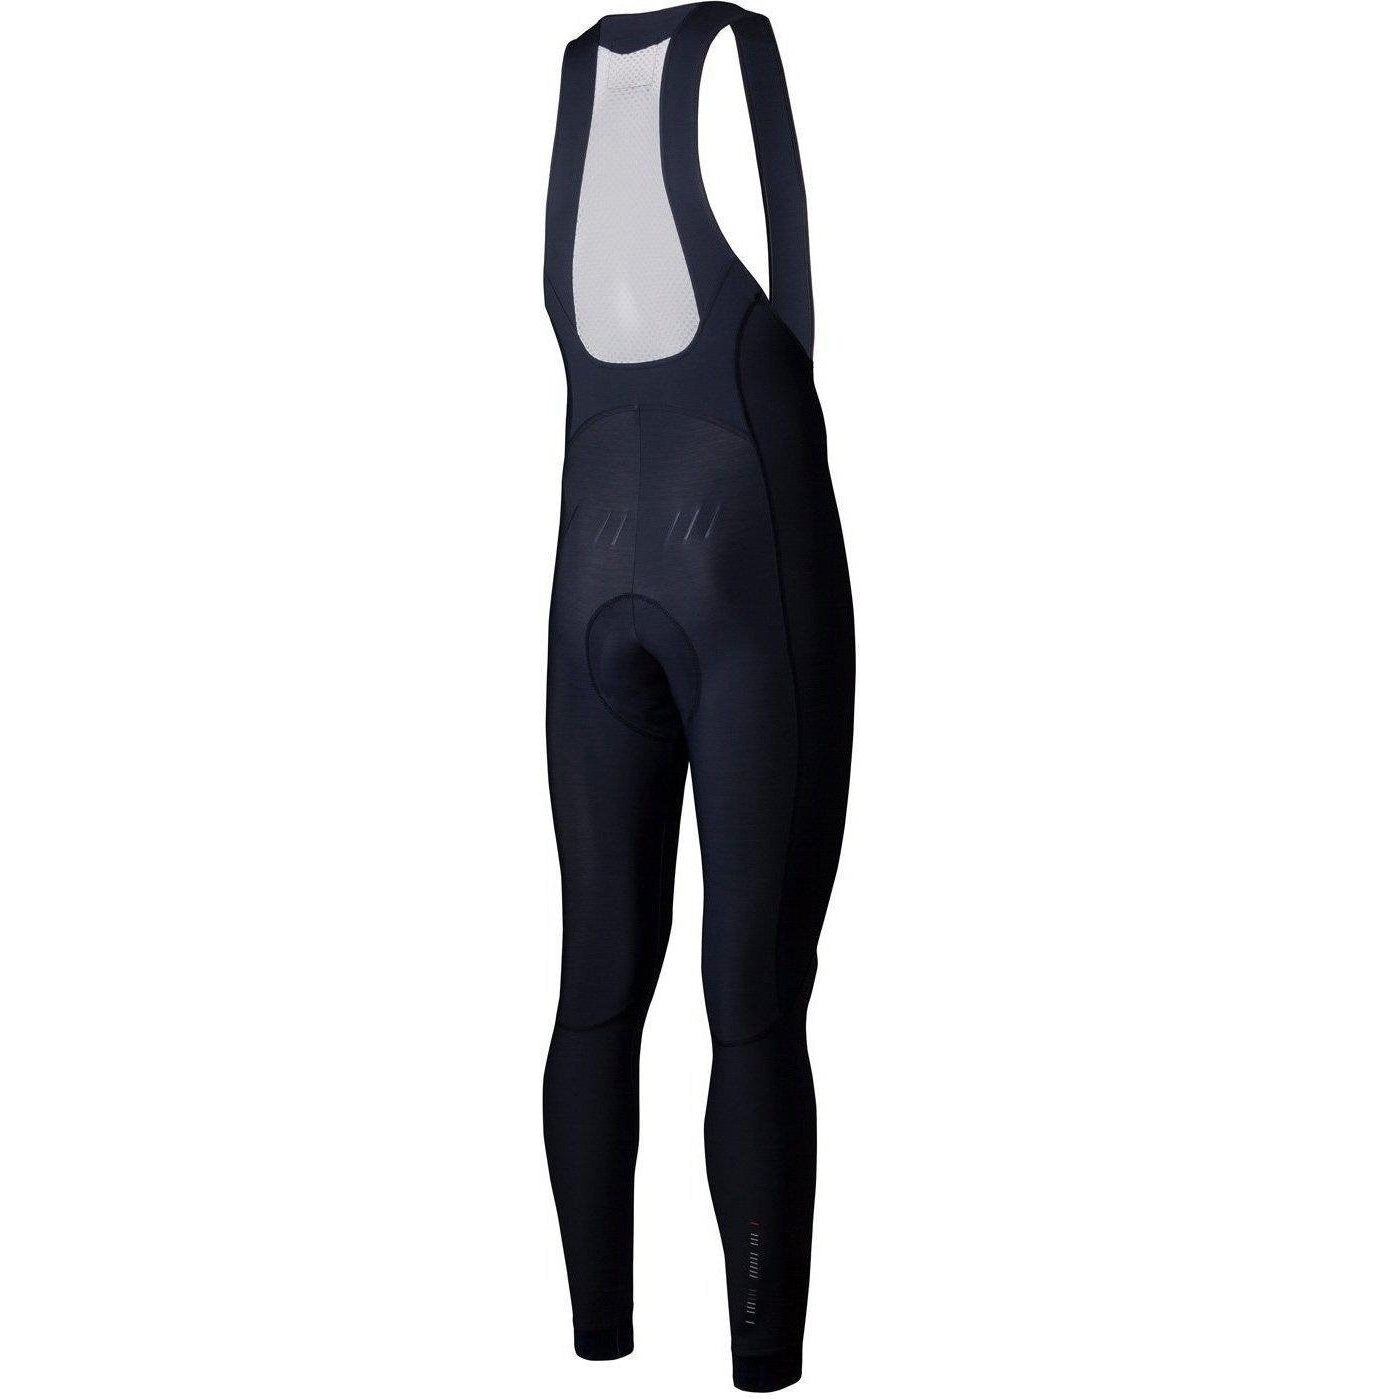 Chpt3-Chpt3 Origin 1.13 Bibtights--saddleback-elite-performance-cycling